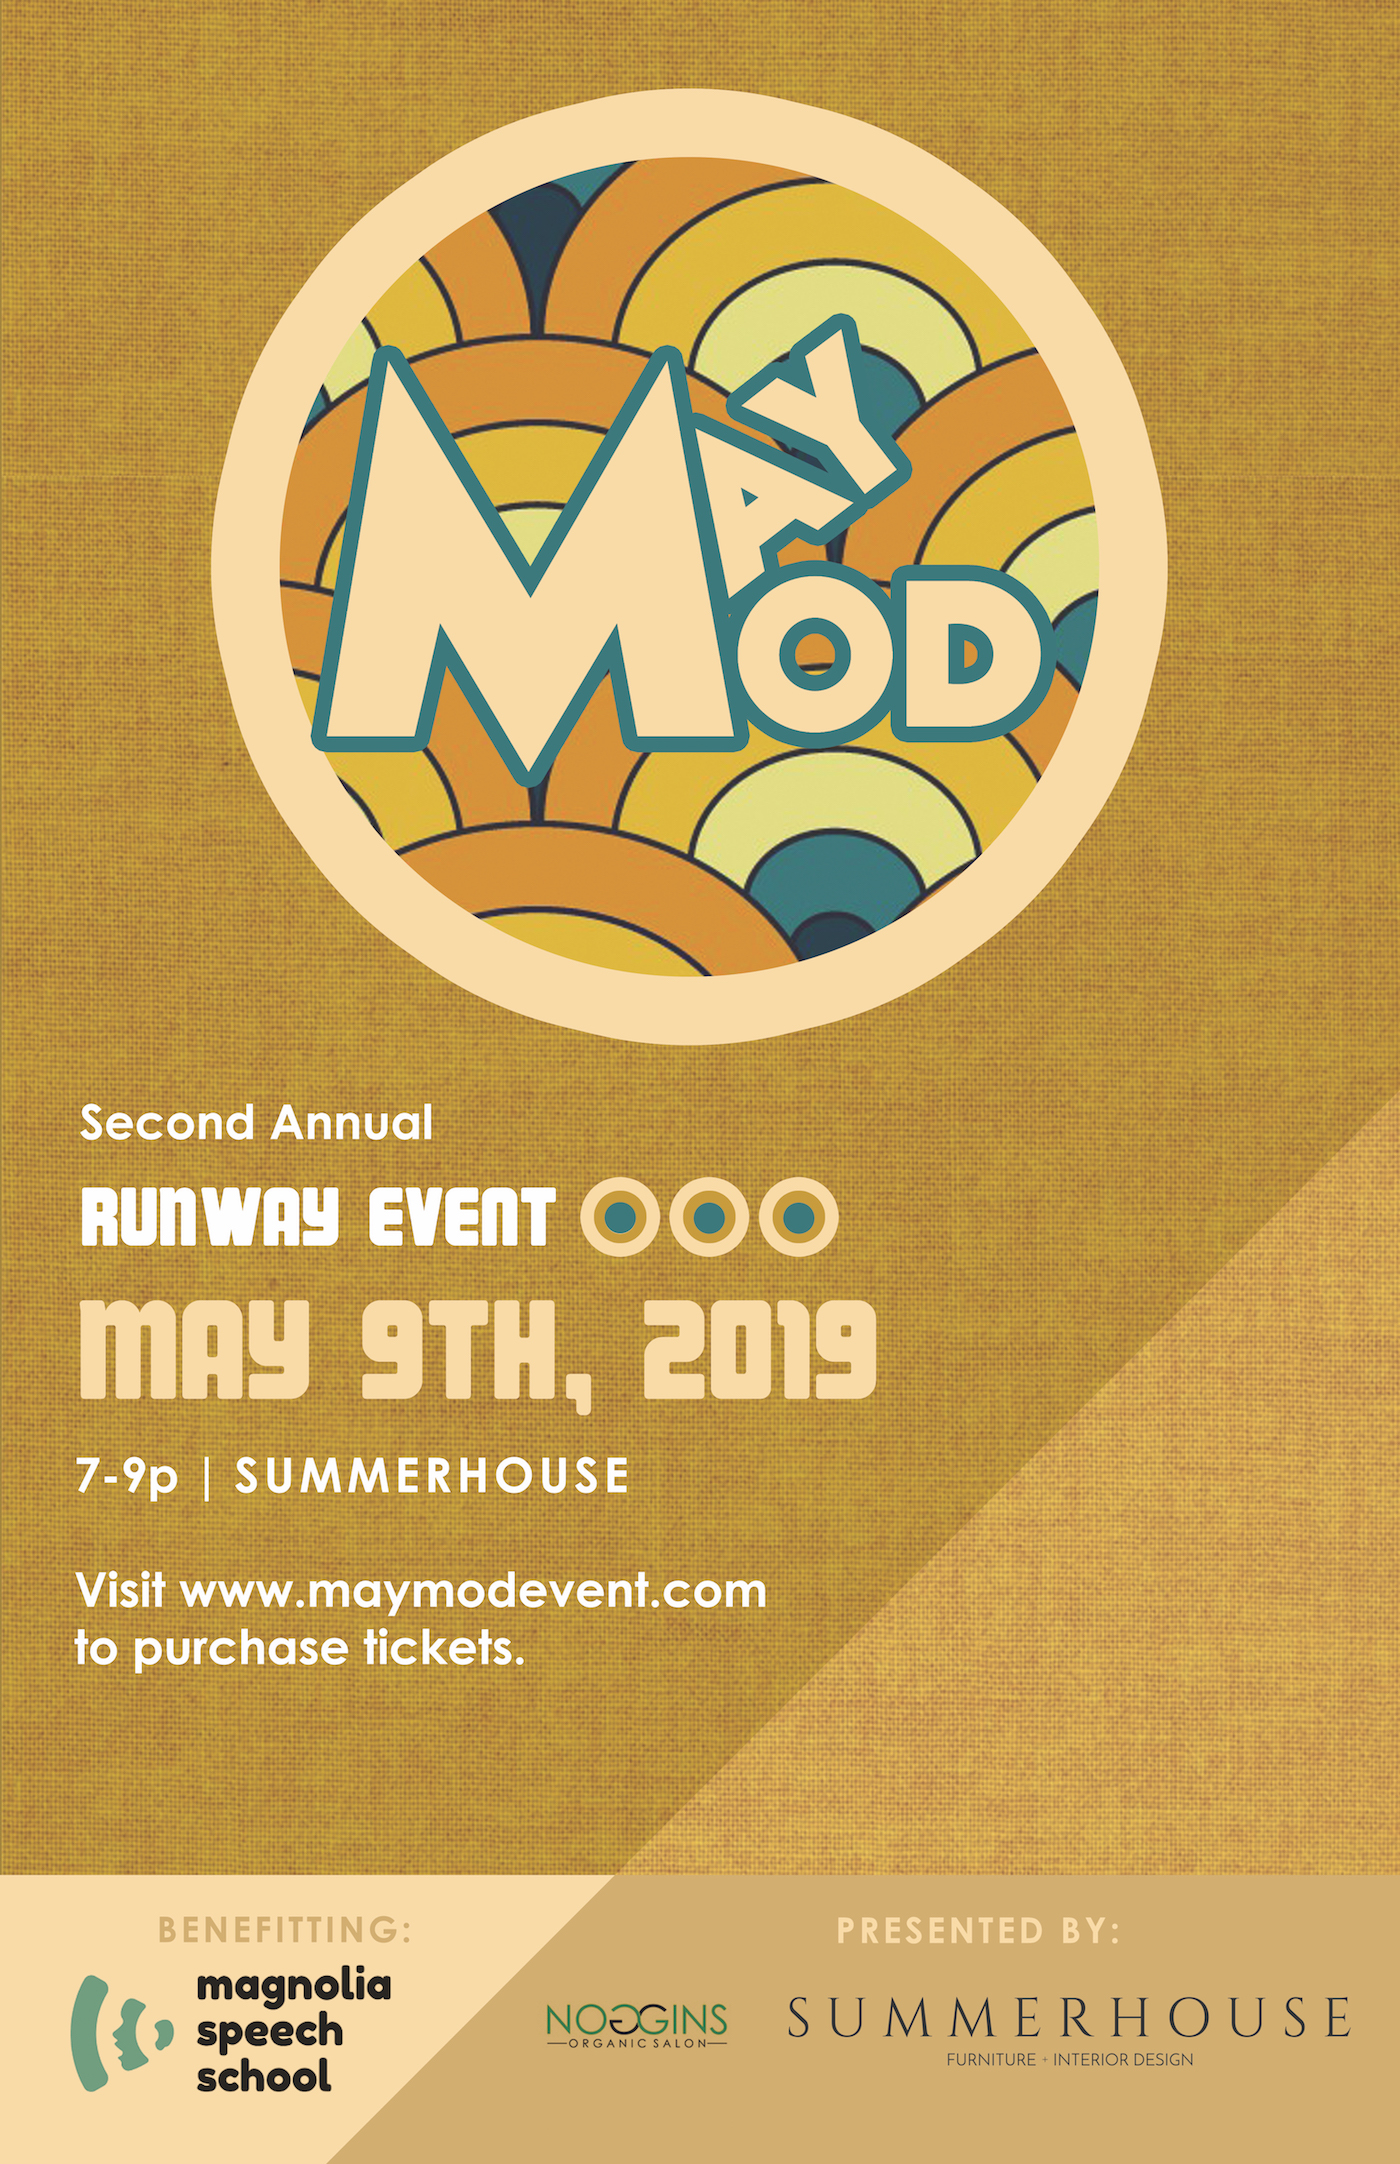 MAYMOD: A Runway Event